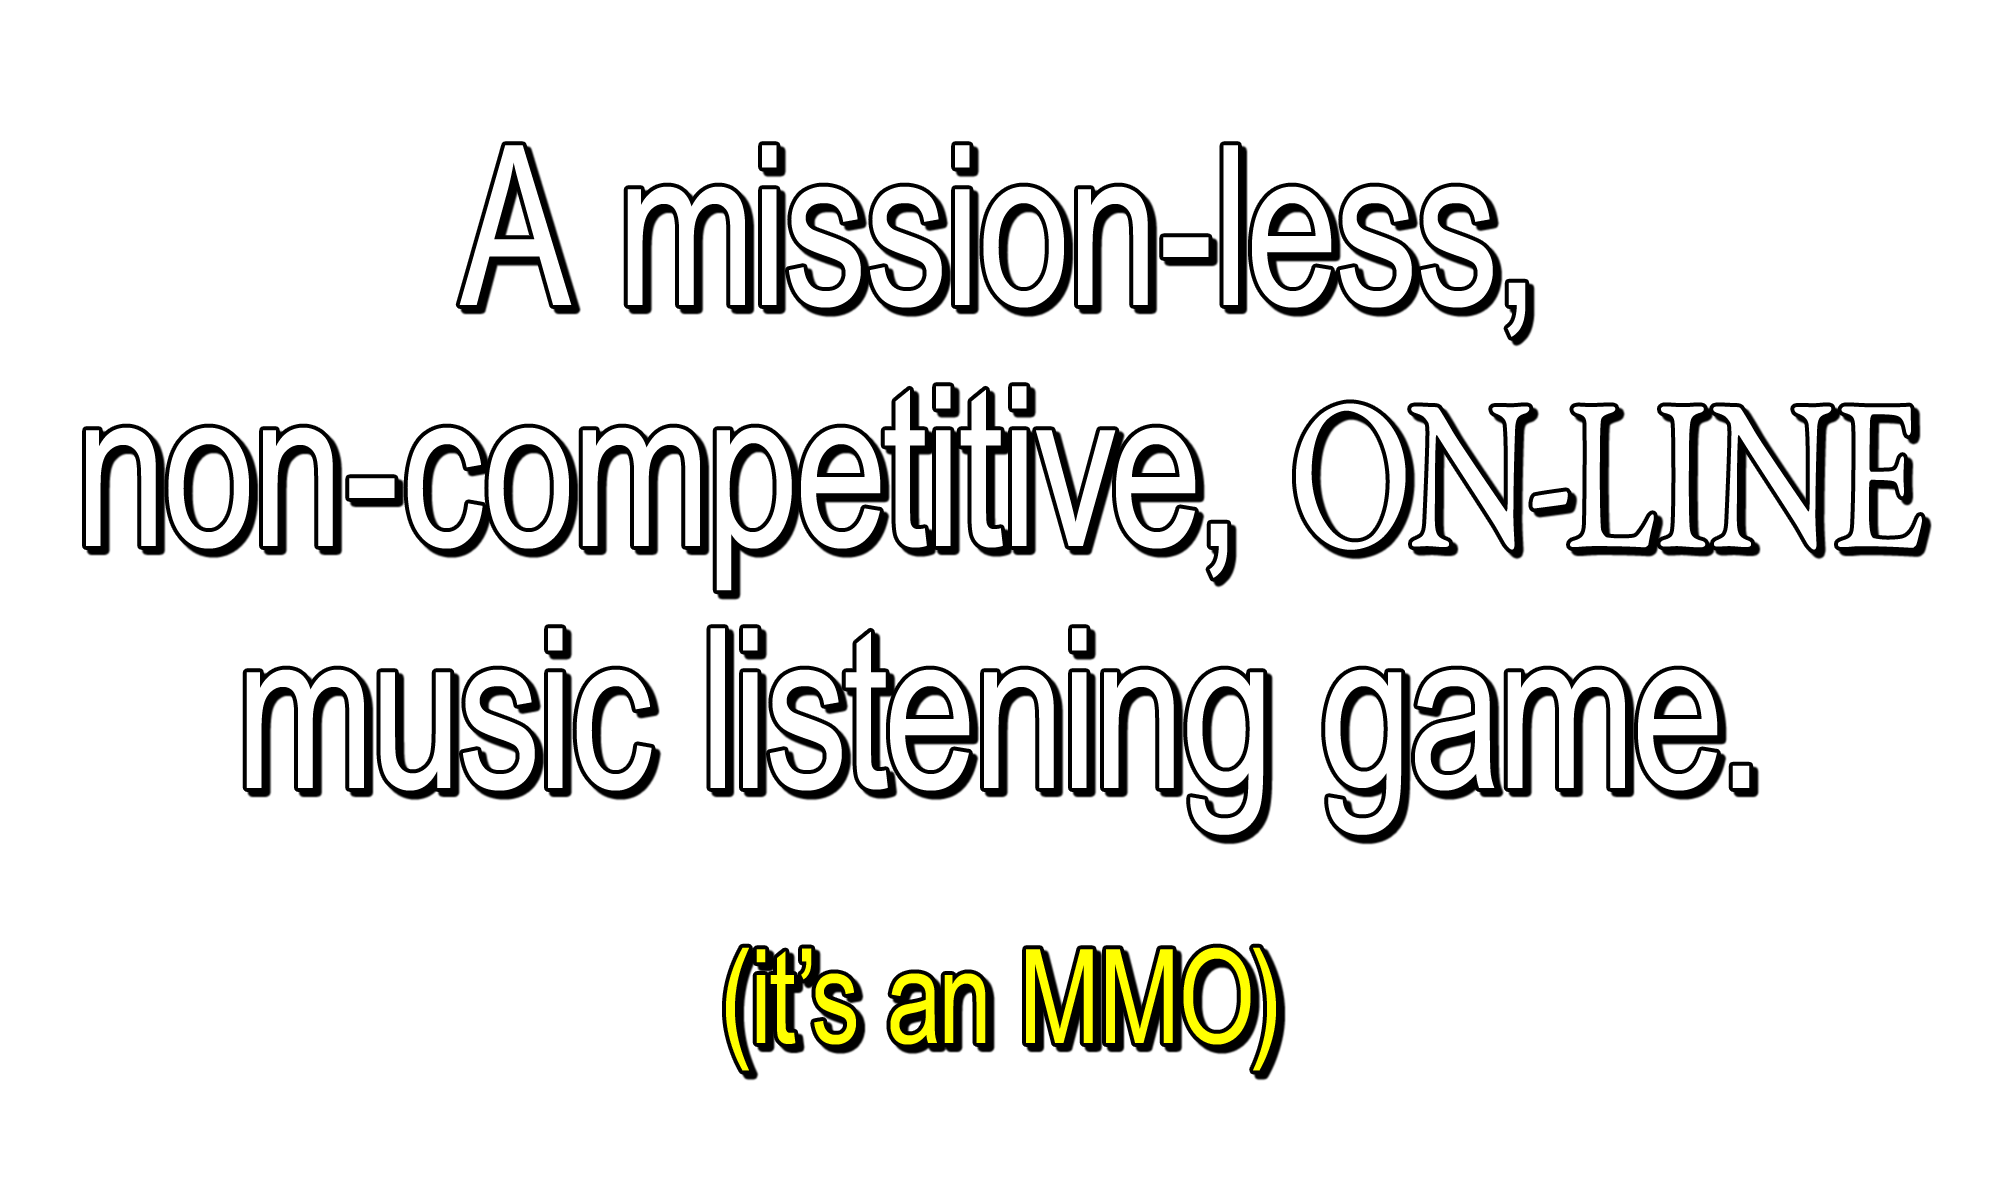 A mission-less, non-competitive, ON-LINE music listening game. (it's an MMO)